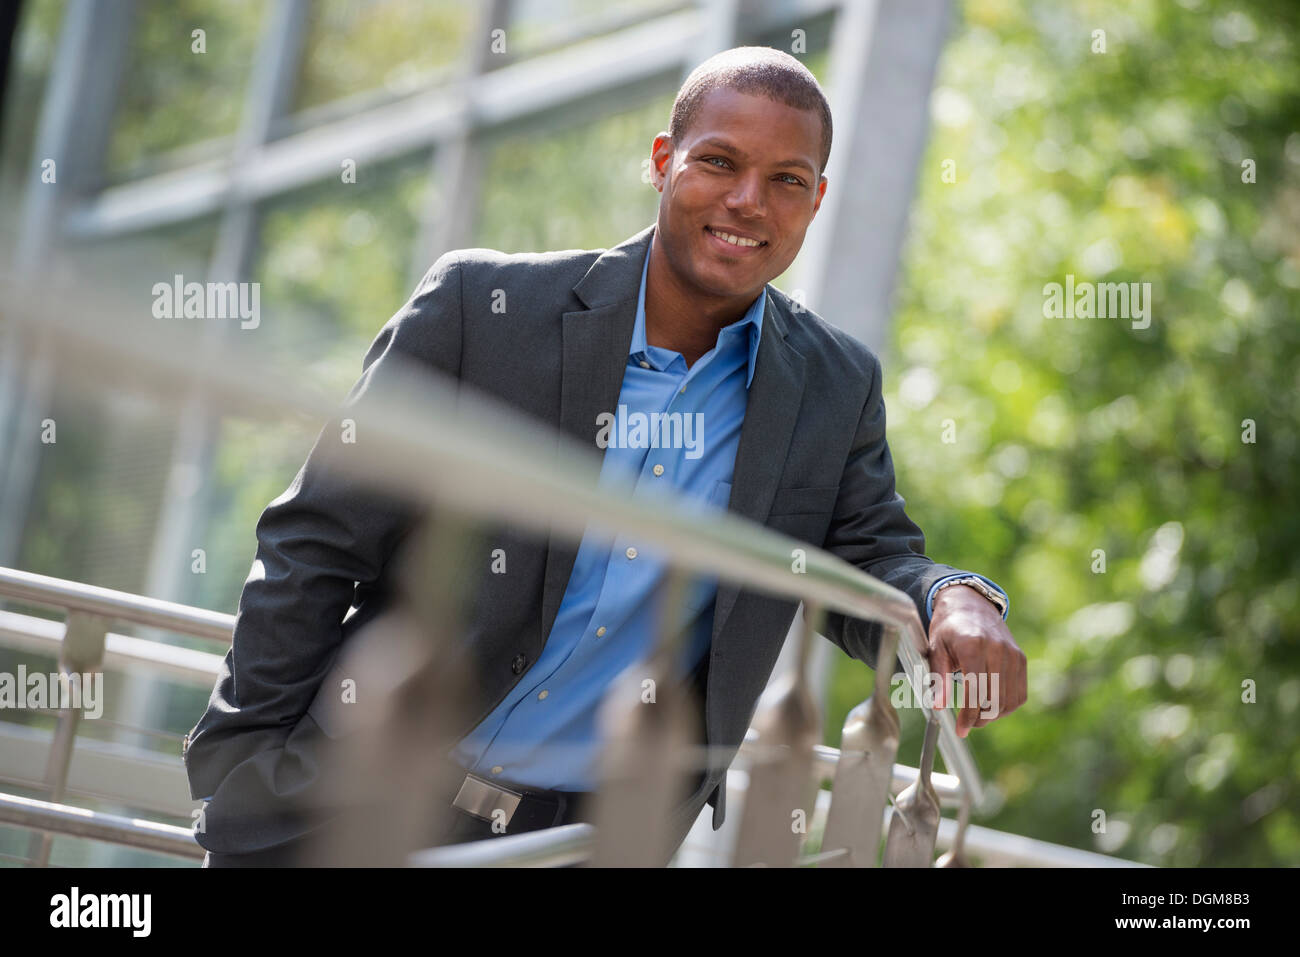 A young man in a jacket and open collared blue shirt, leaning on a railing in a city park in summer. Looking at Stock Photo